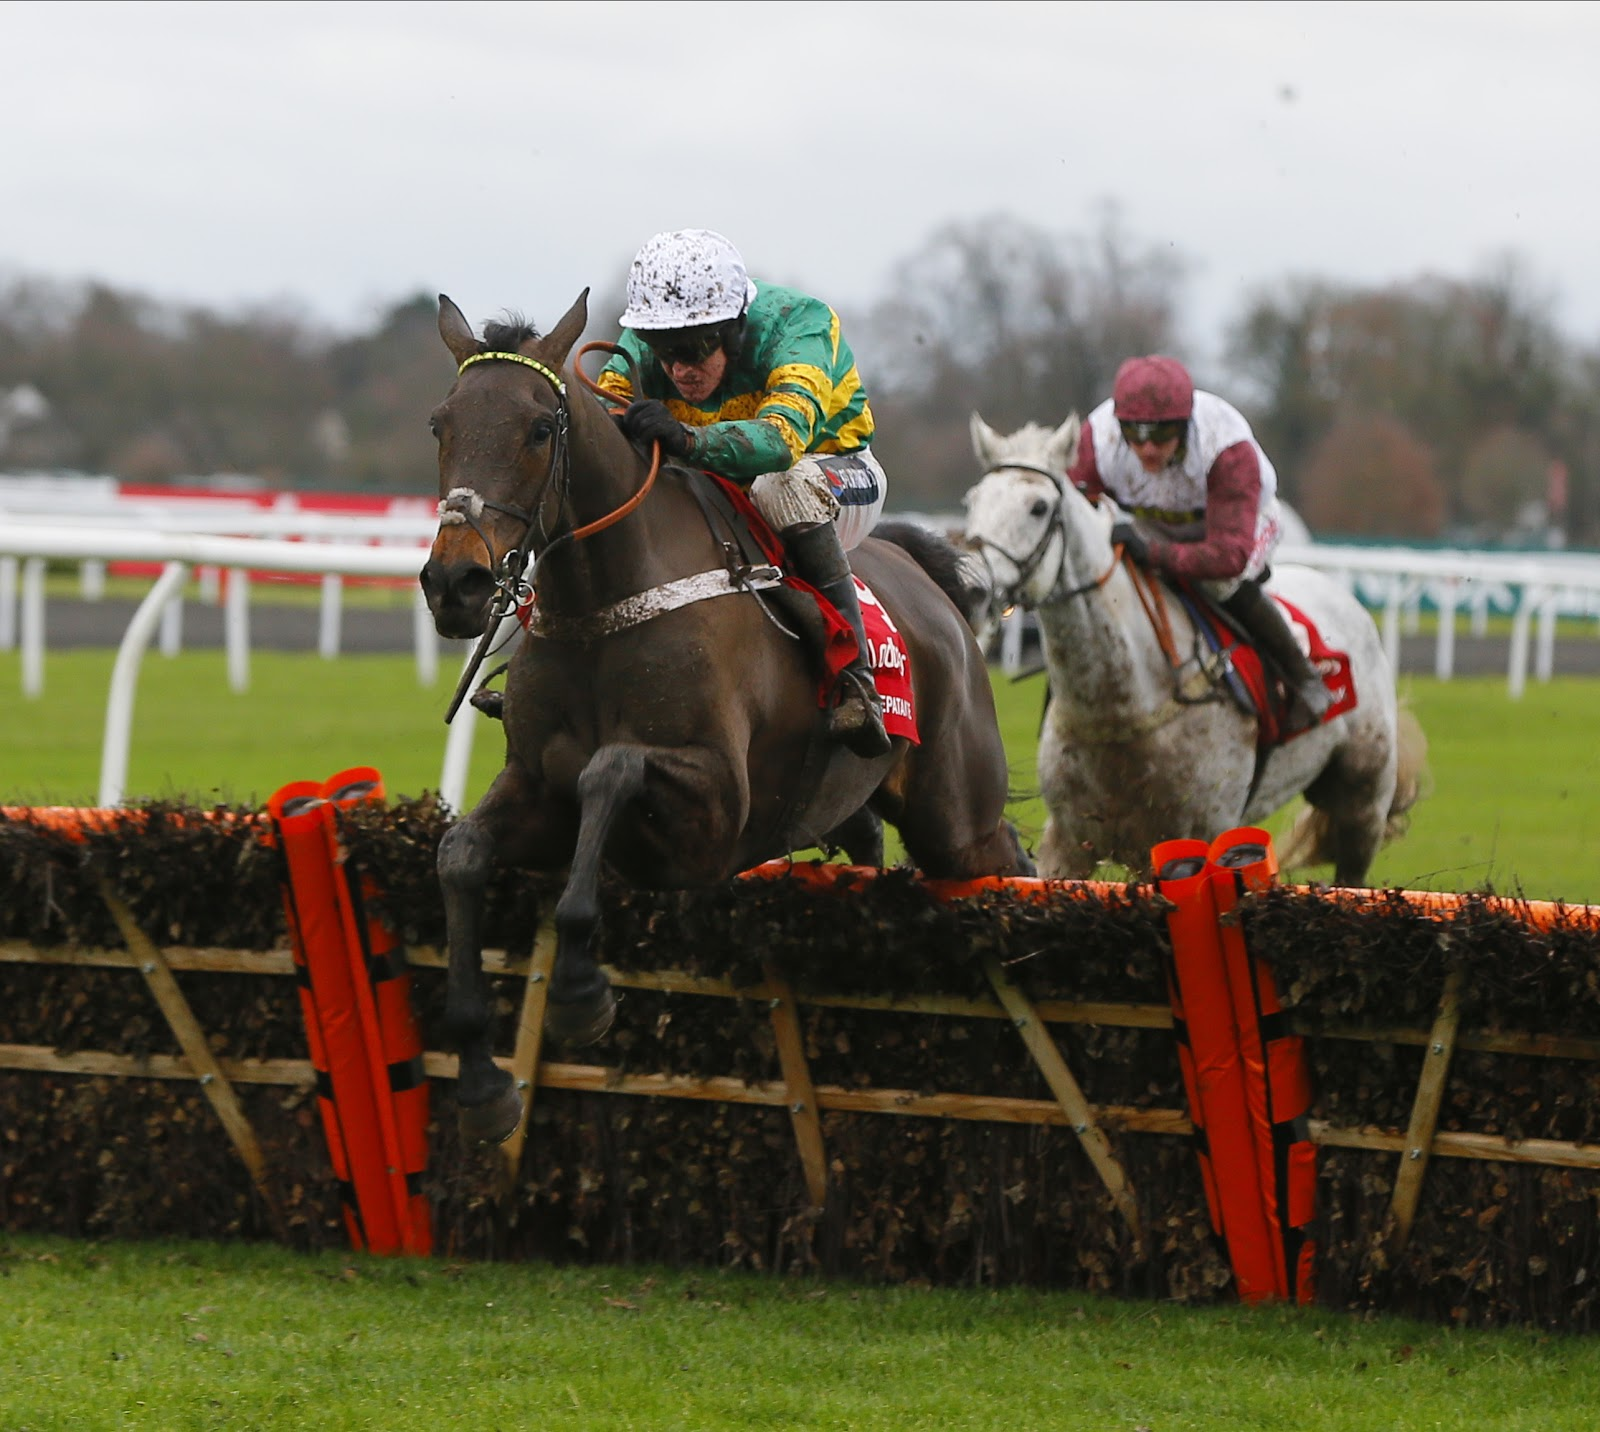 Cheltenham Festival 2020 – Day 1 All You Need To Know